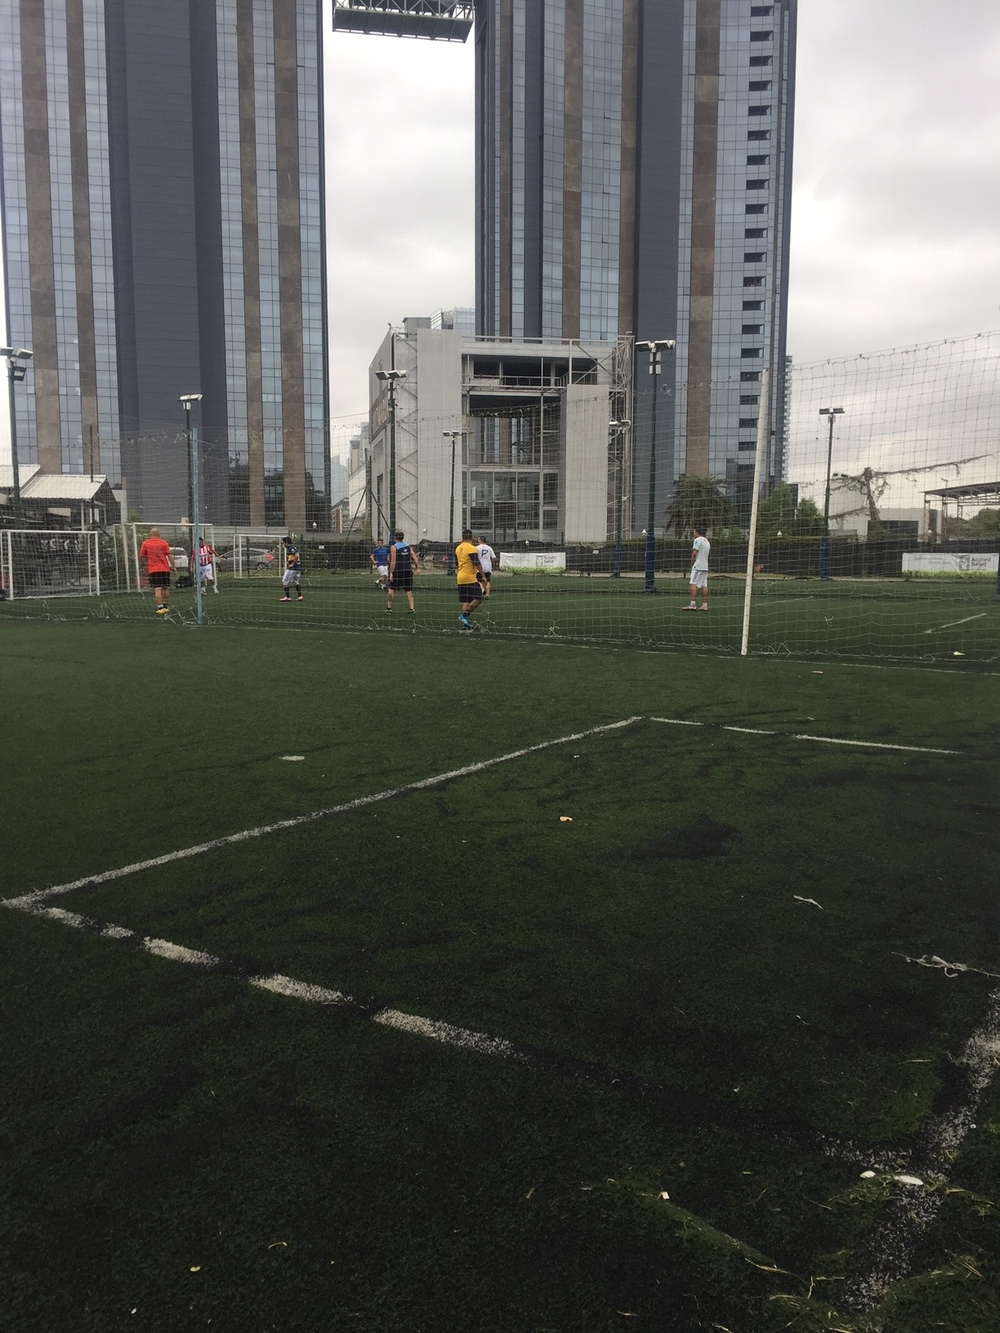 Want a fútbol game? You can find it weeknights after work or weekends every where.